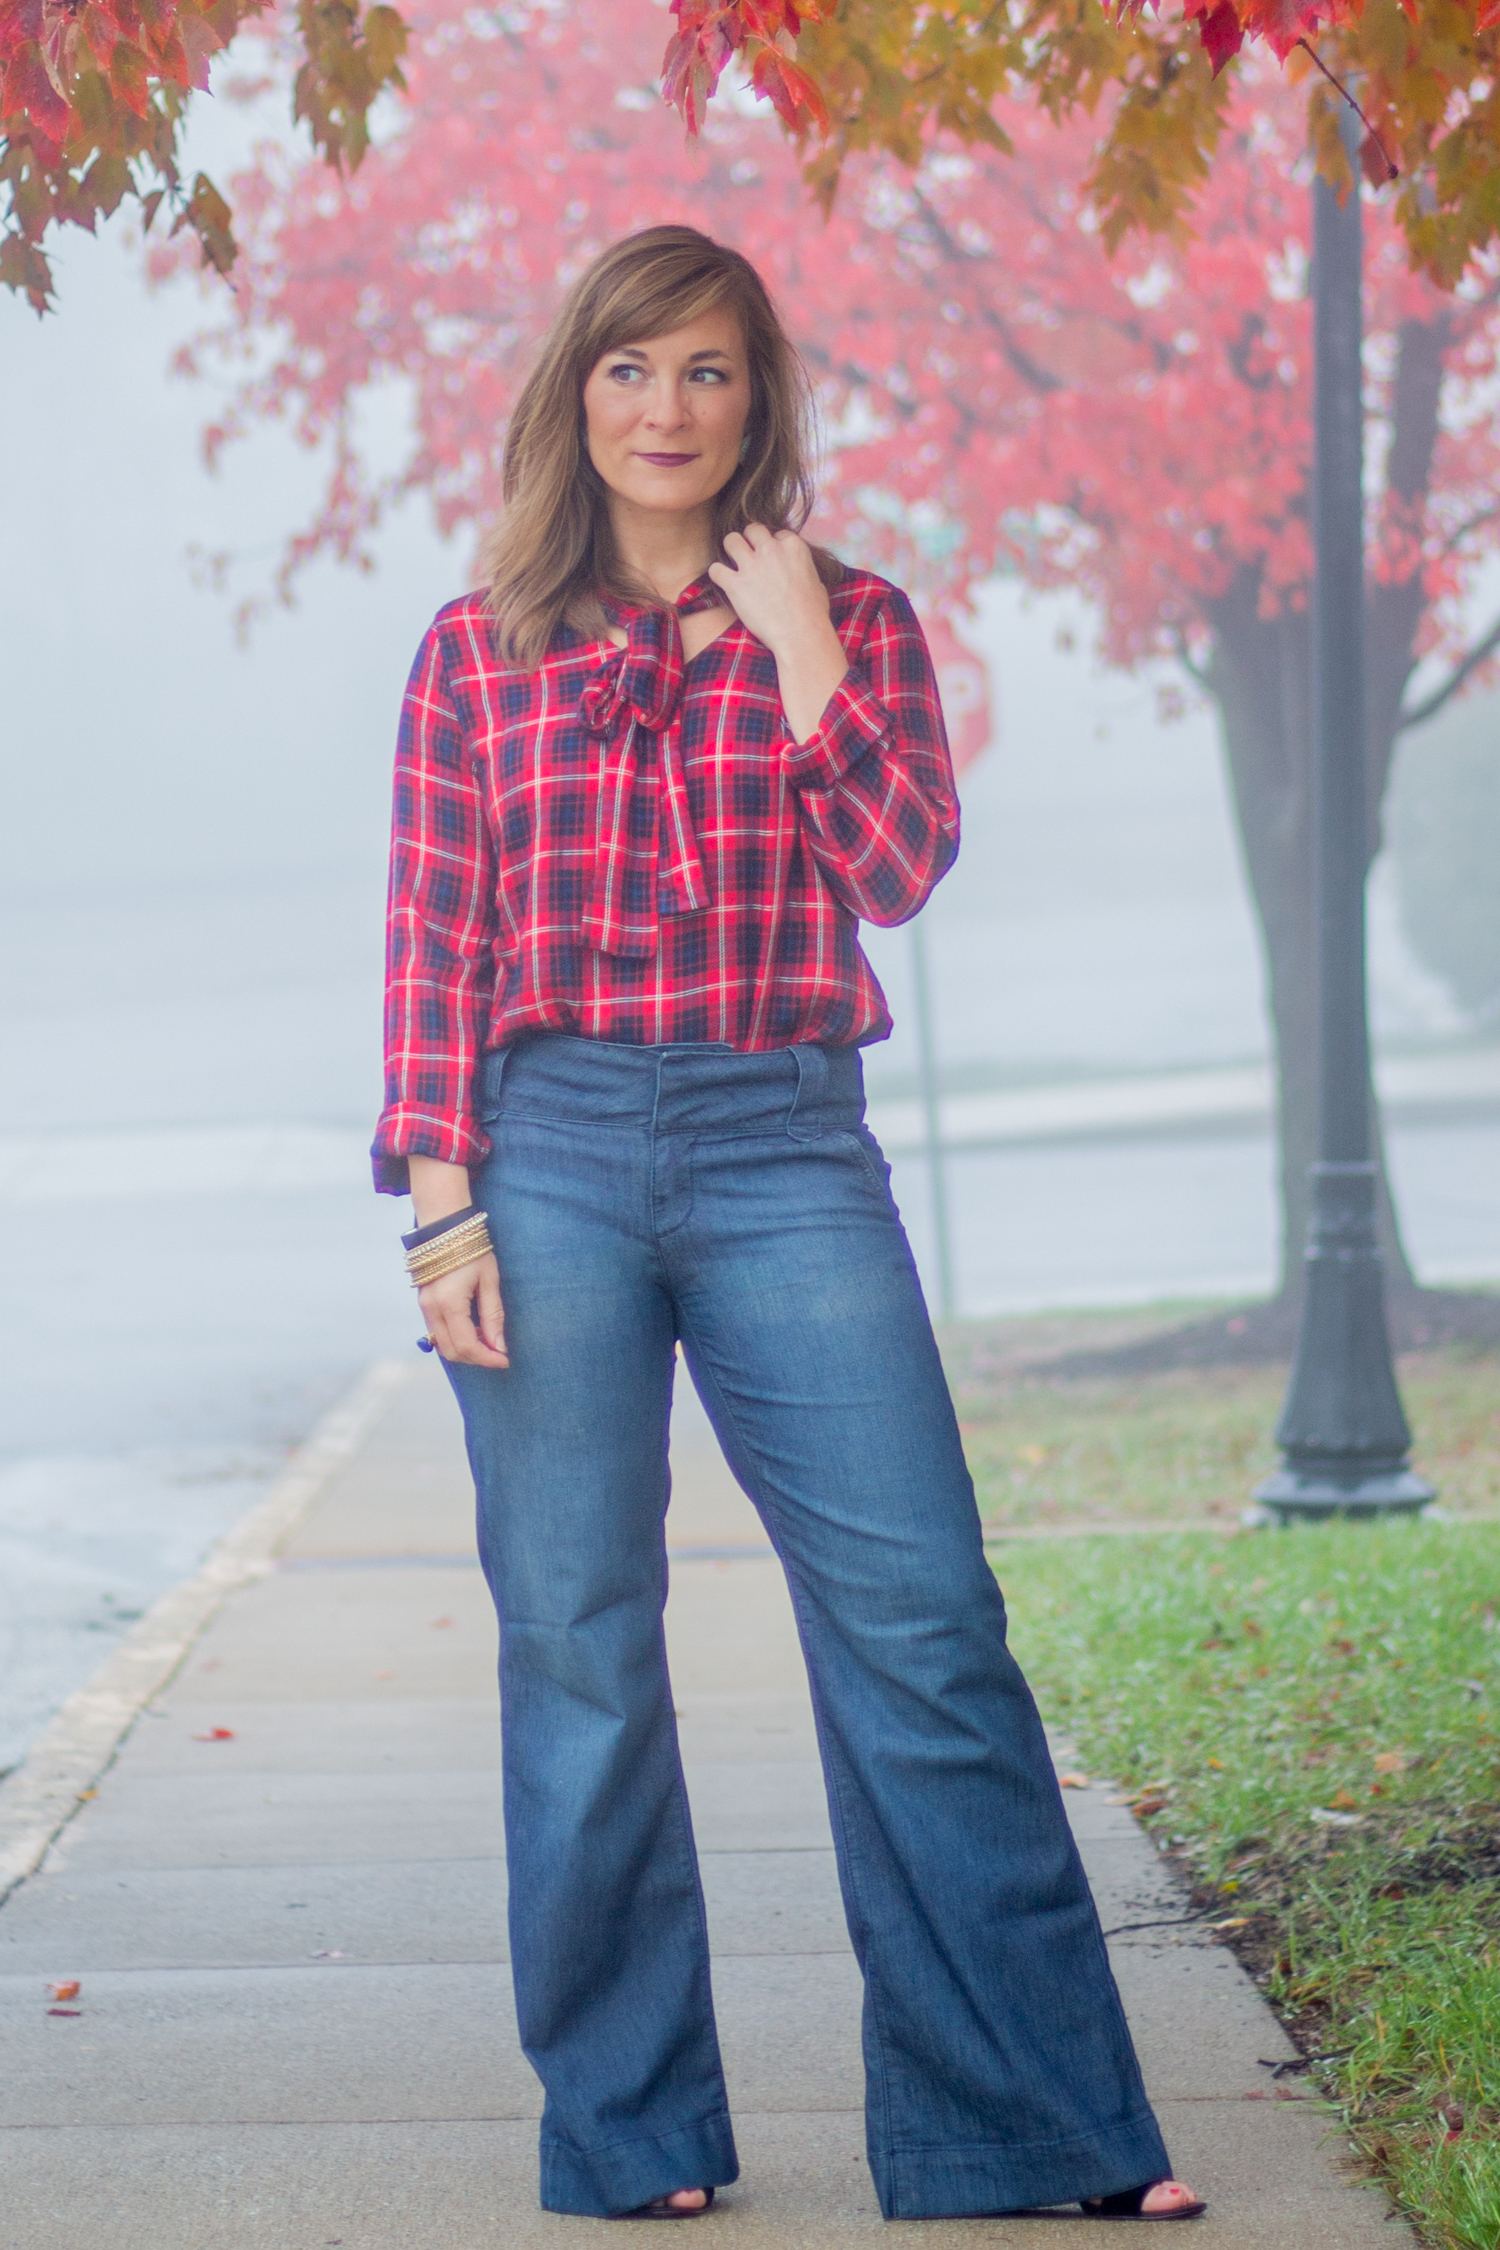 Women's Flannel Shirts.jpg